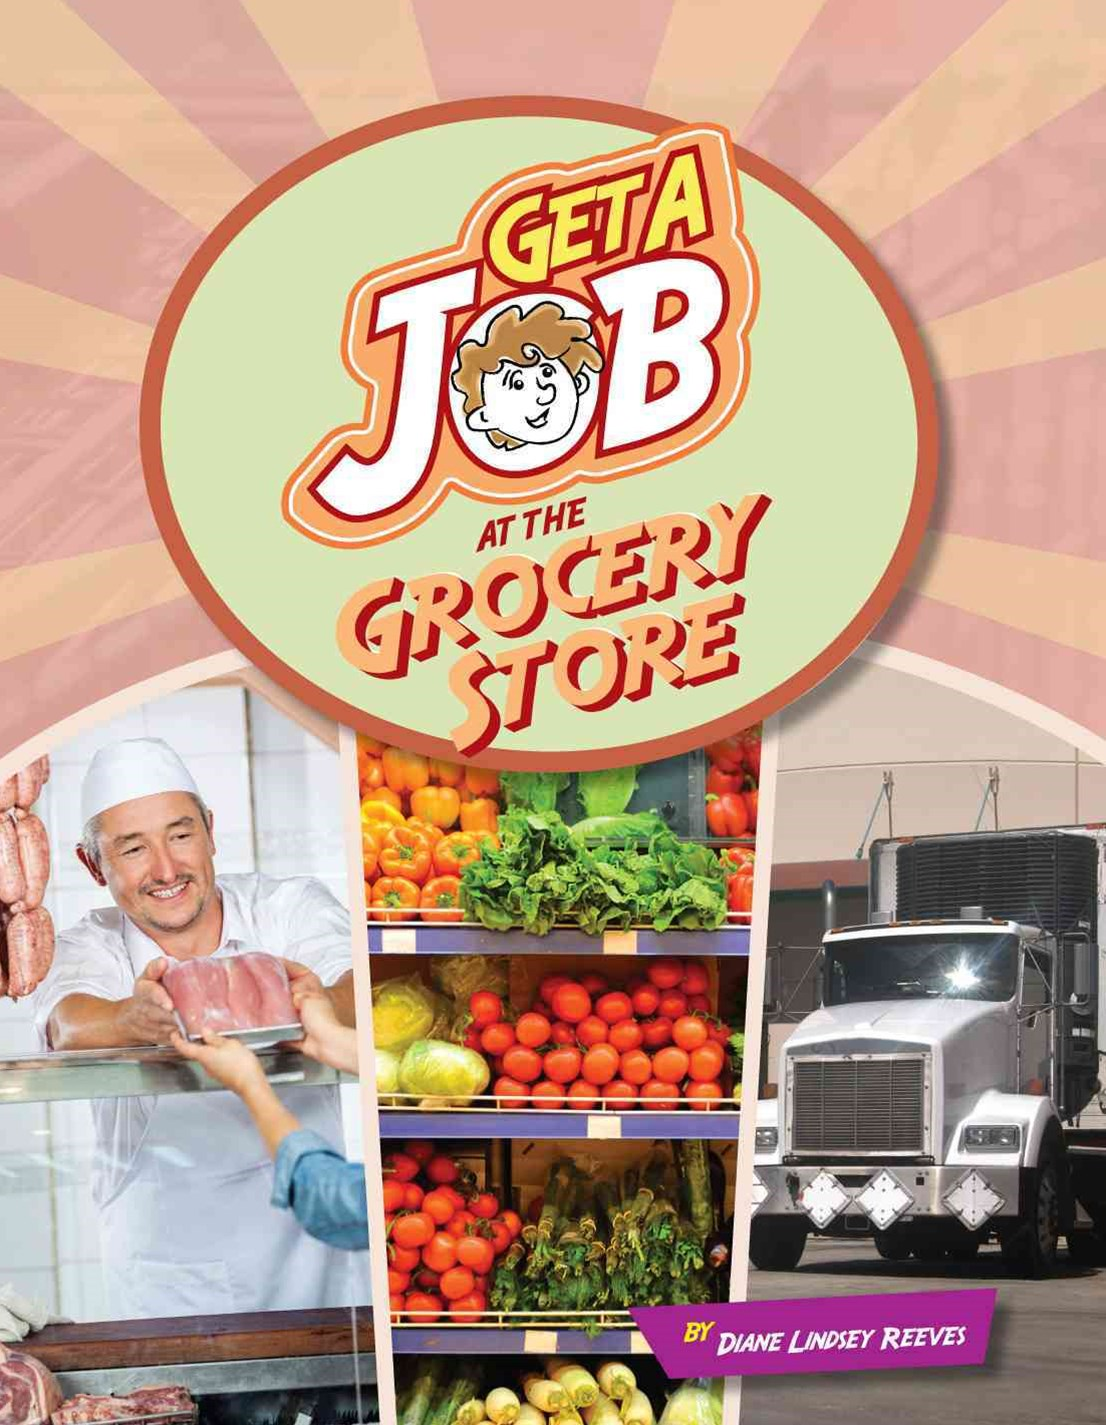 Get a Job at the Grocery Store